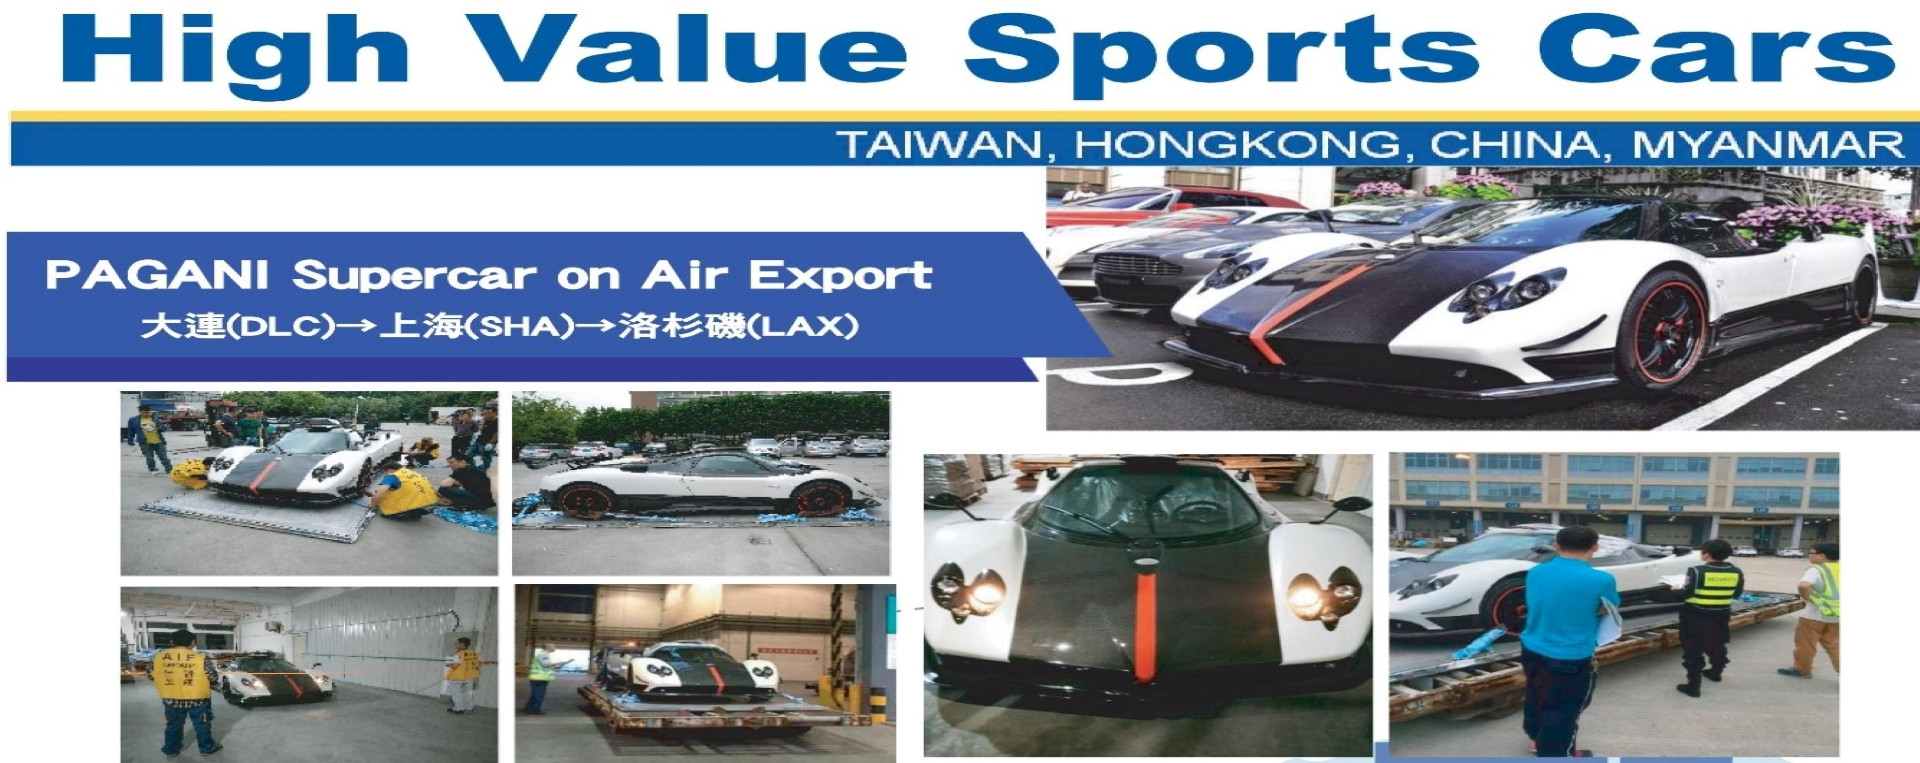 High Value Sports Cars 2